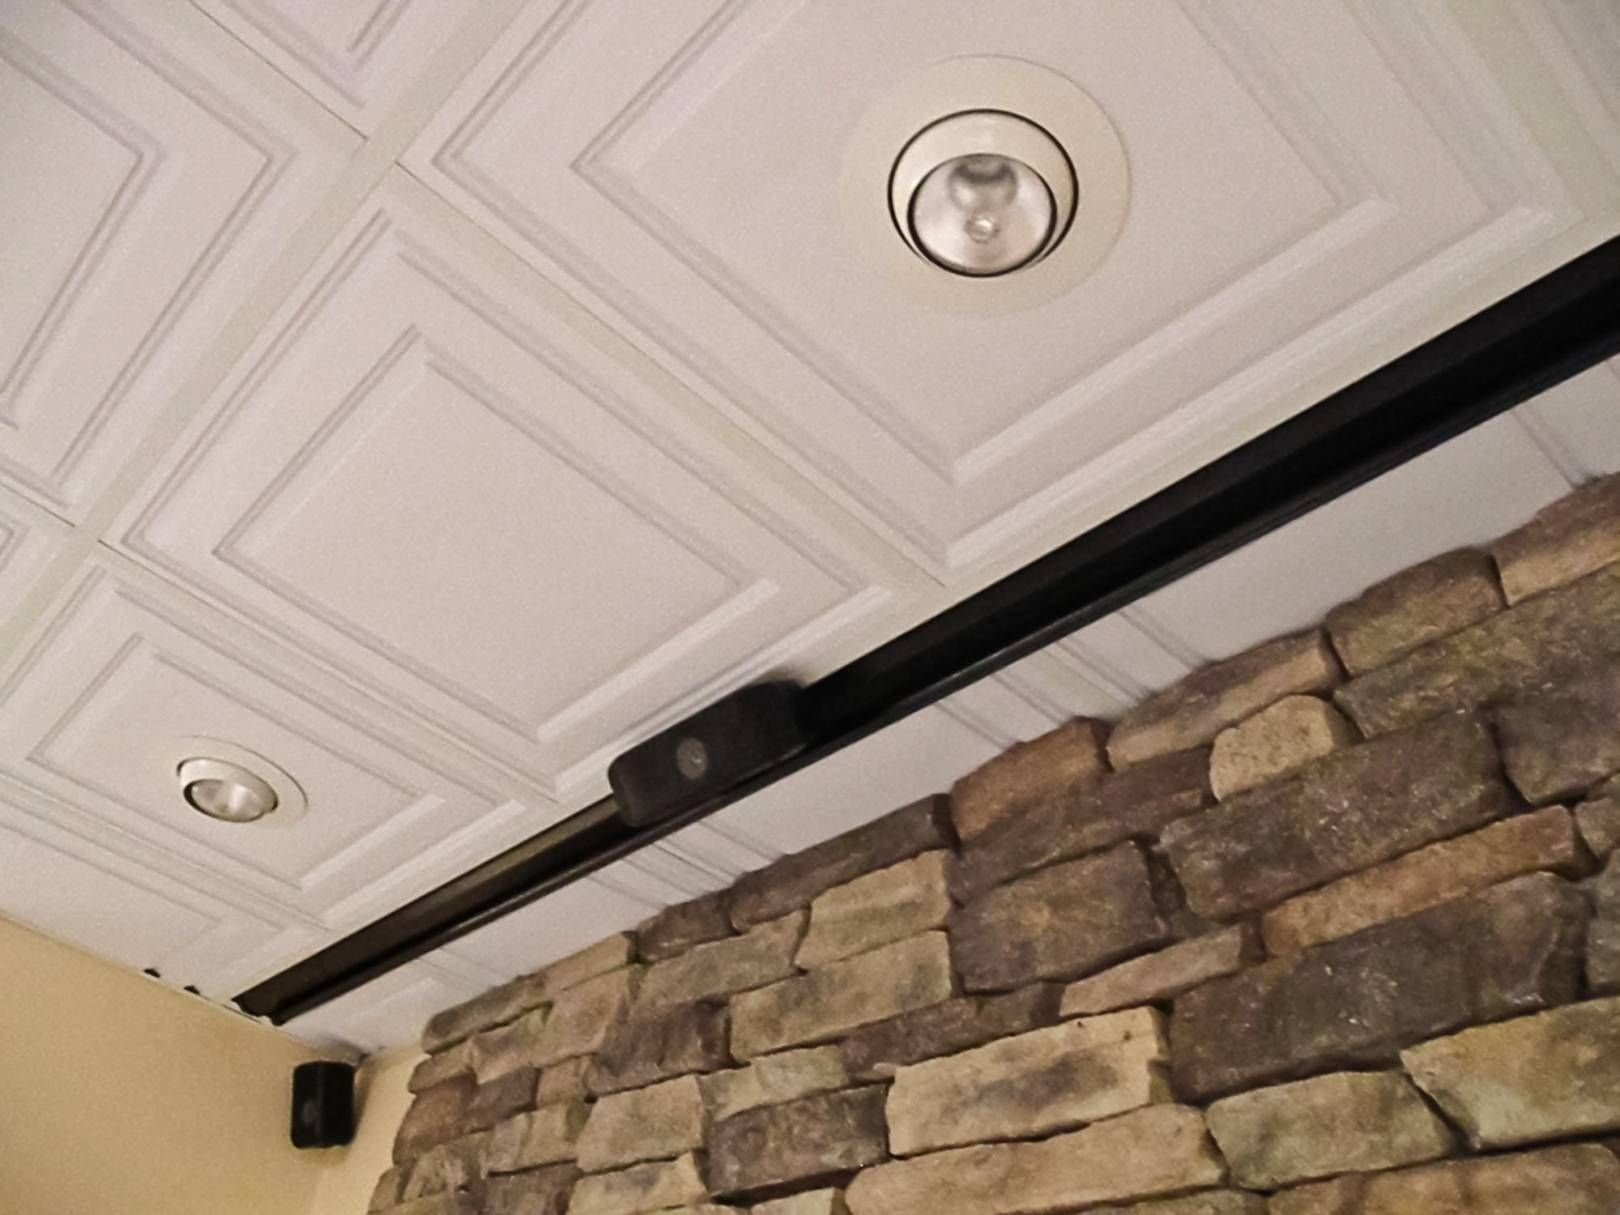 Cutting holes in suspended ceiling tiles gradschoolfairs how to cut holes in drop ceiling tiles www gradschoolfairs com dailygadgetfo Images